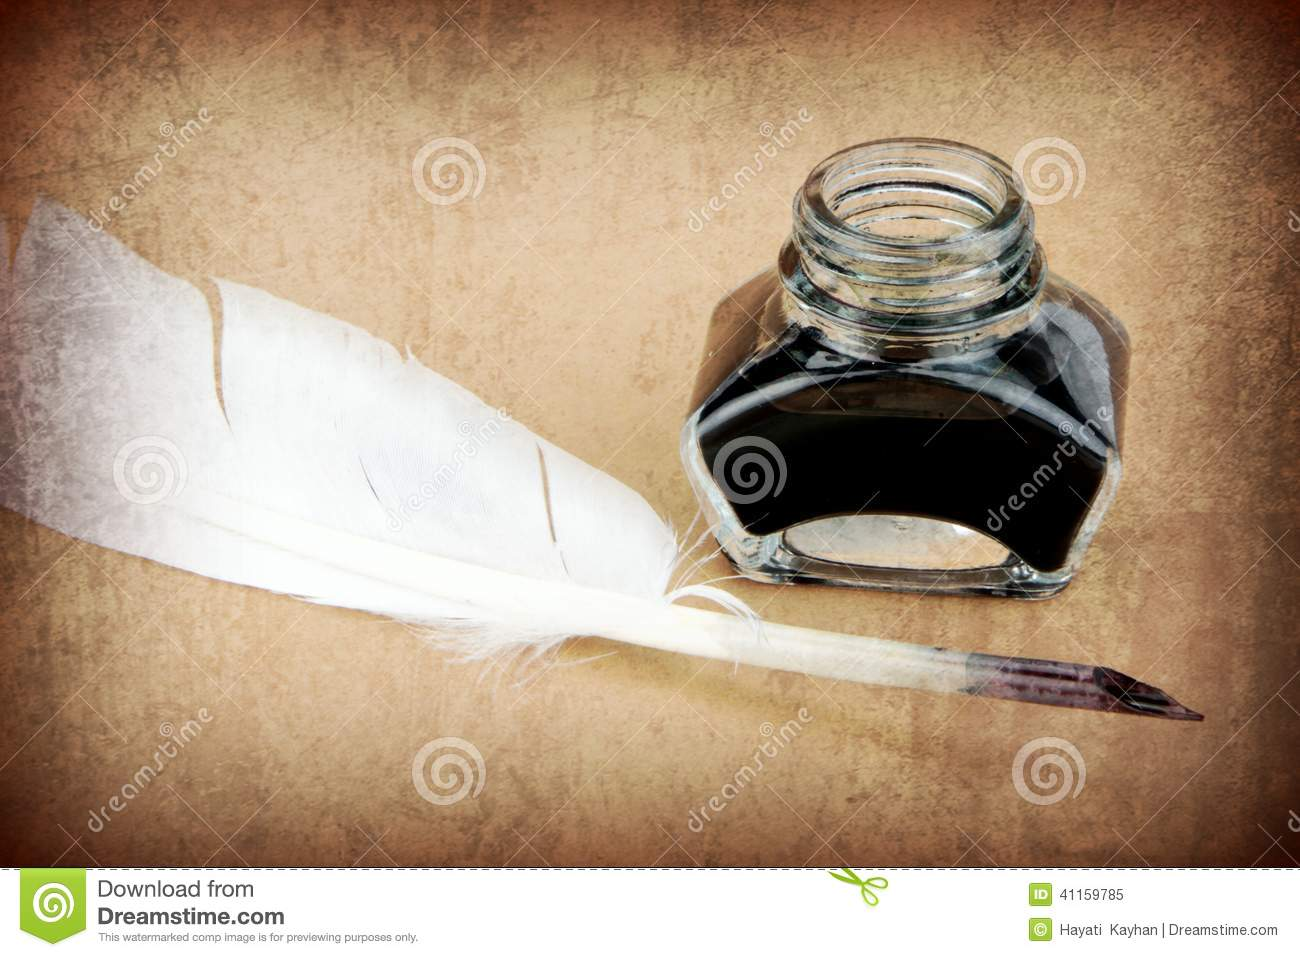 Quill pen and ink bottle